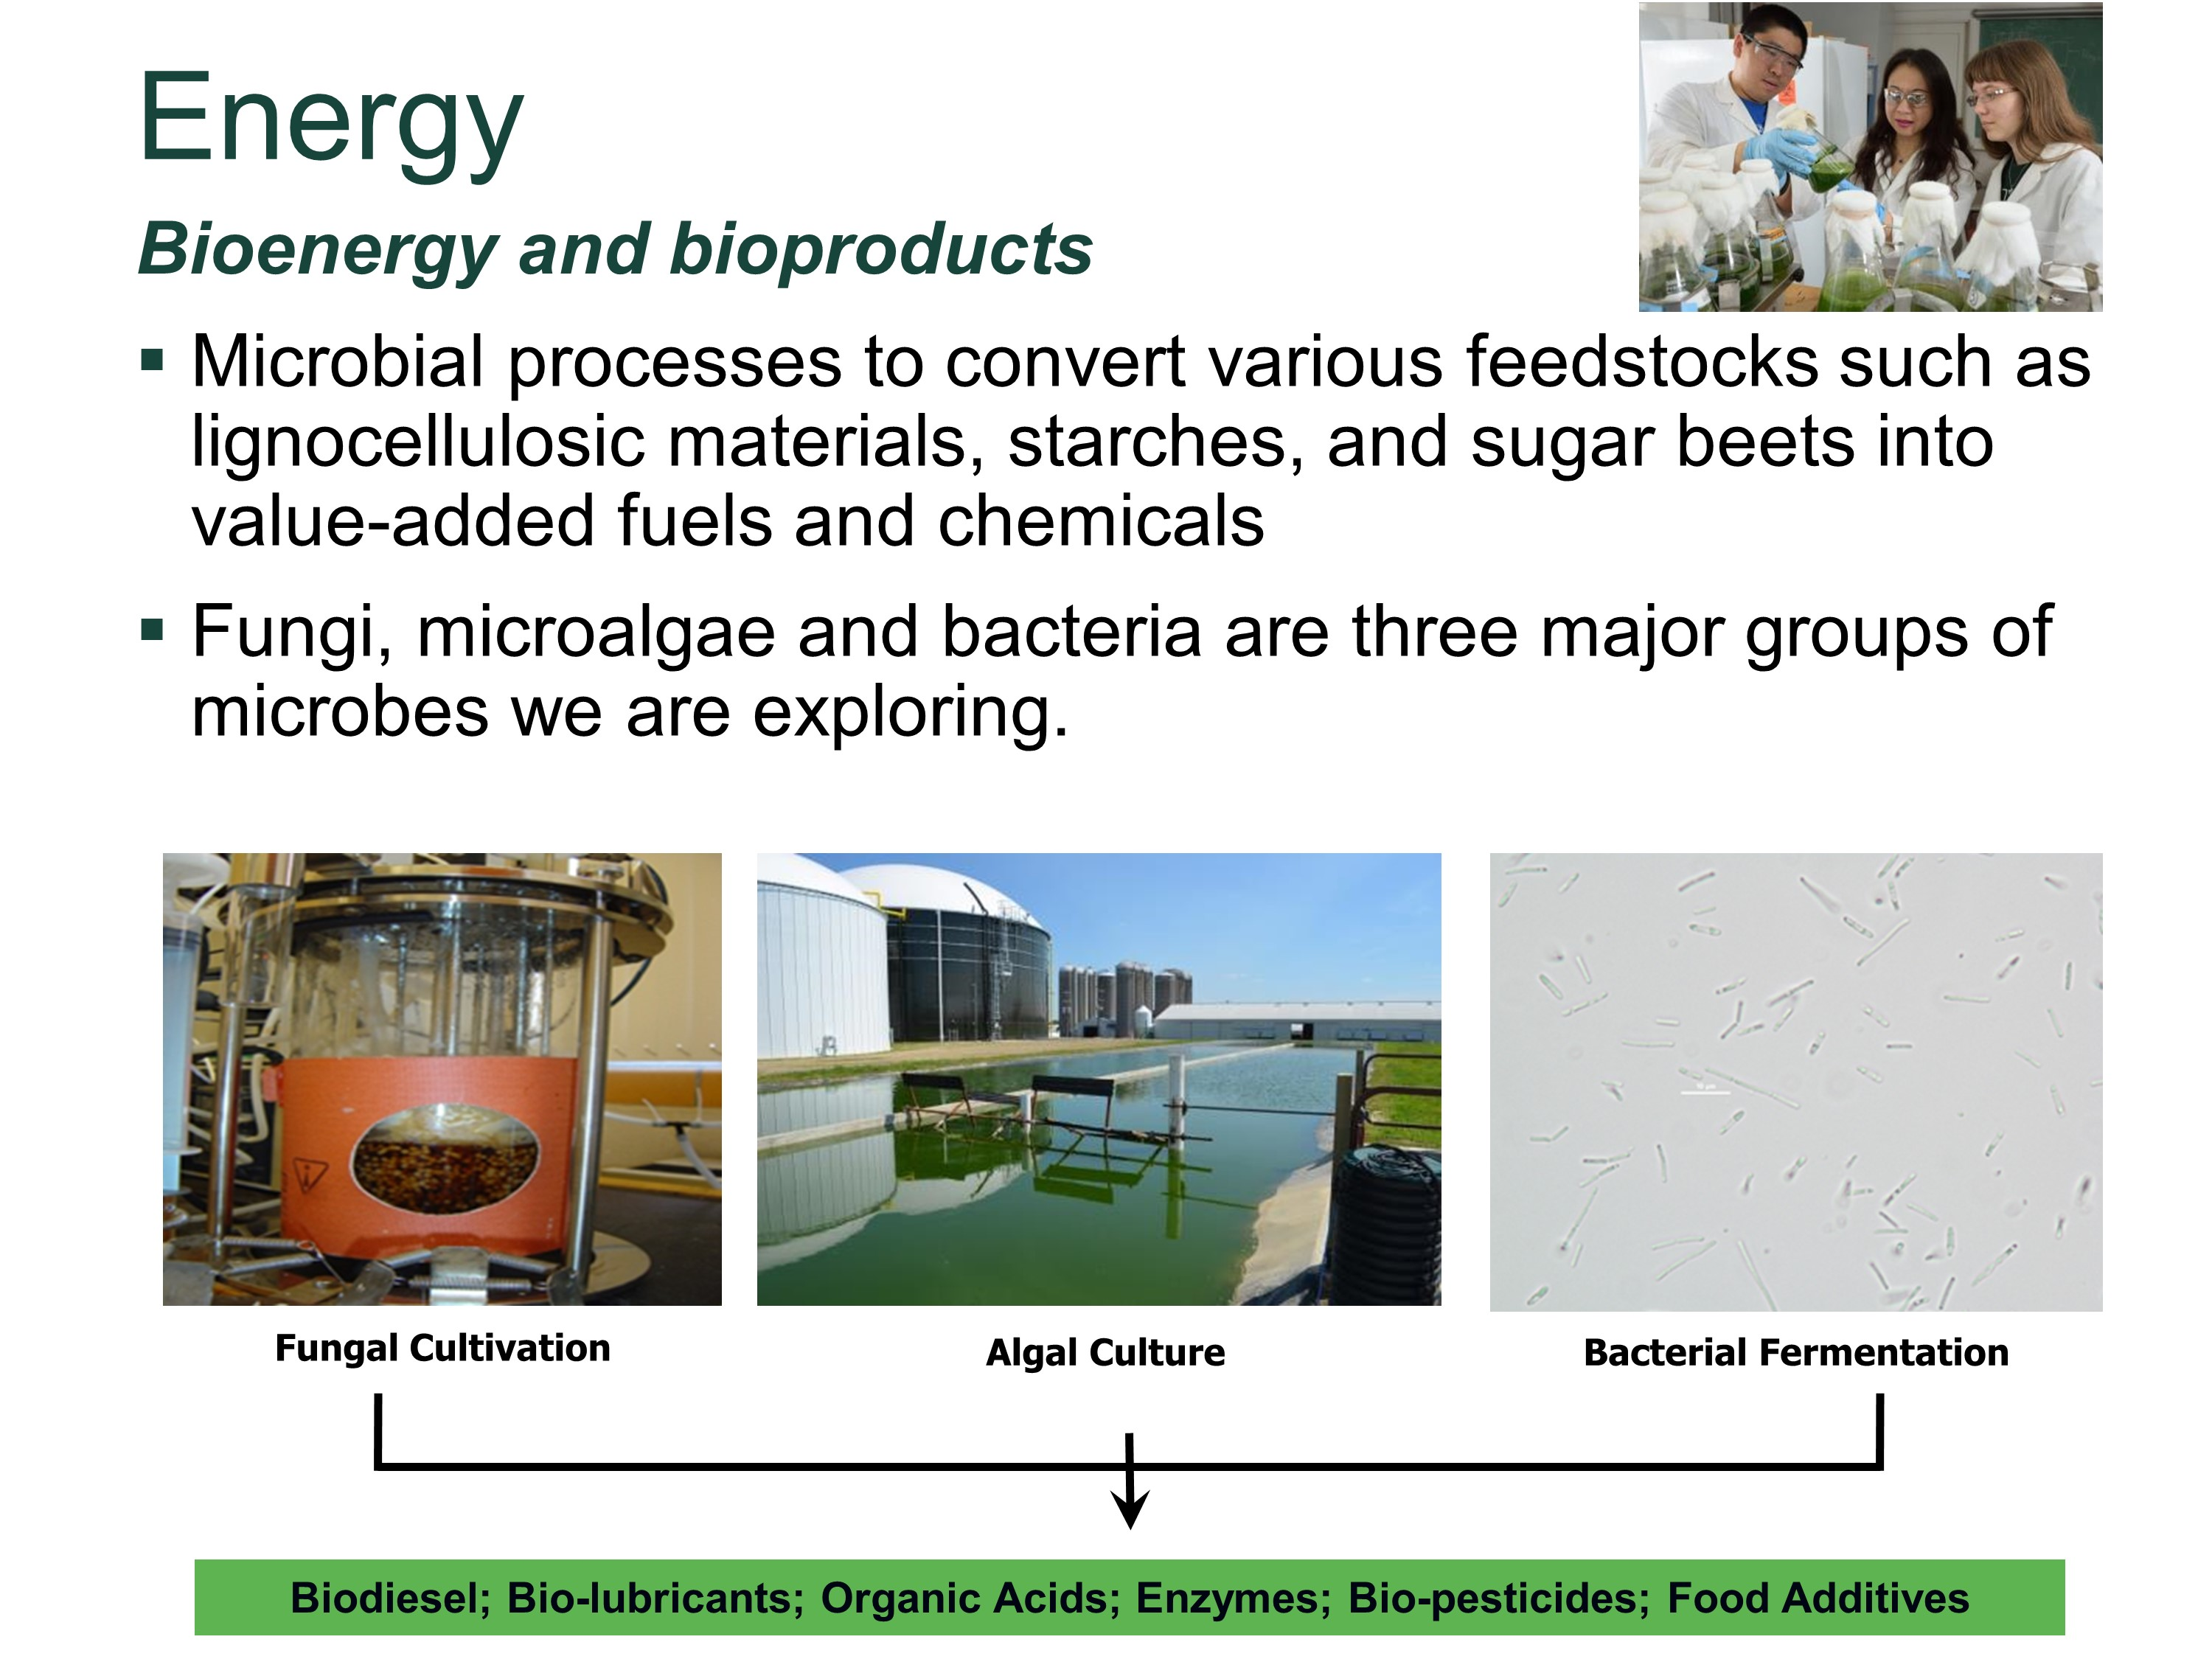 Bioenergy and bioproducts